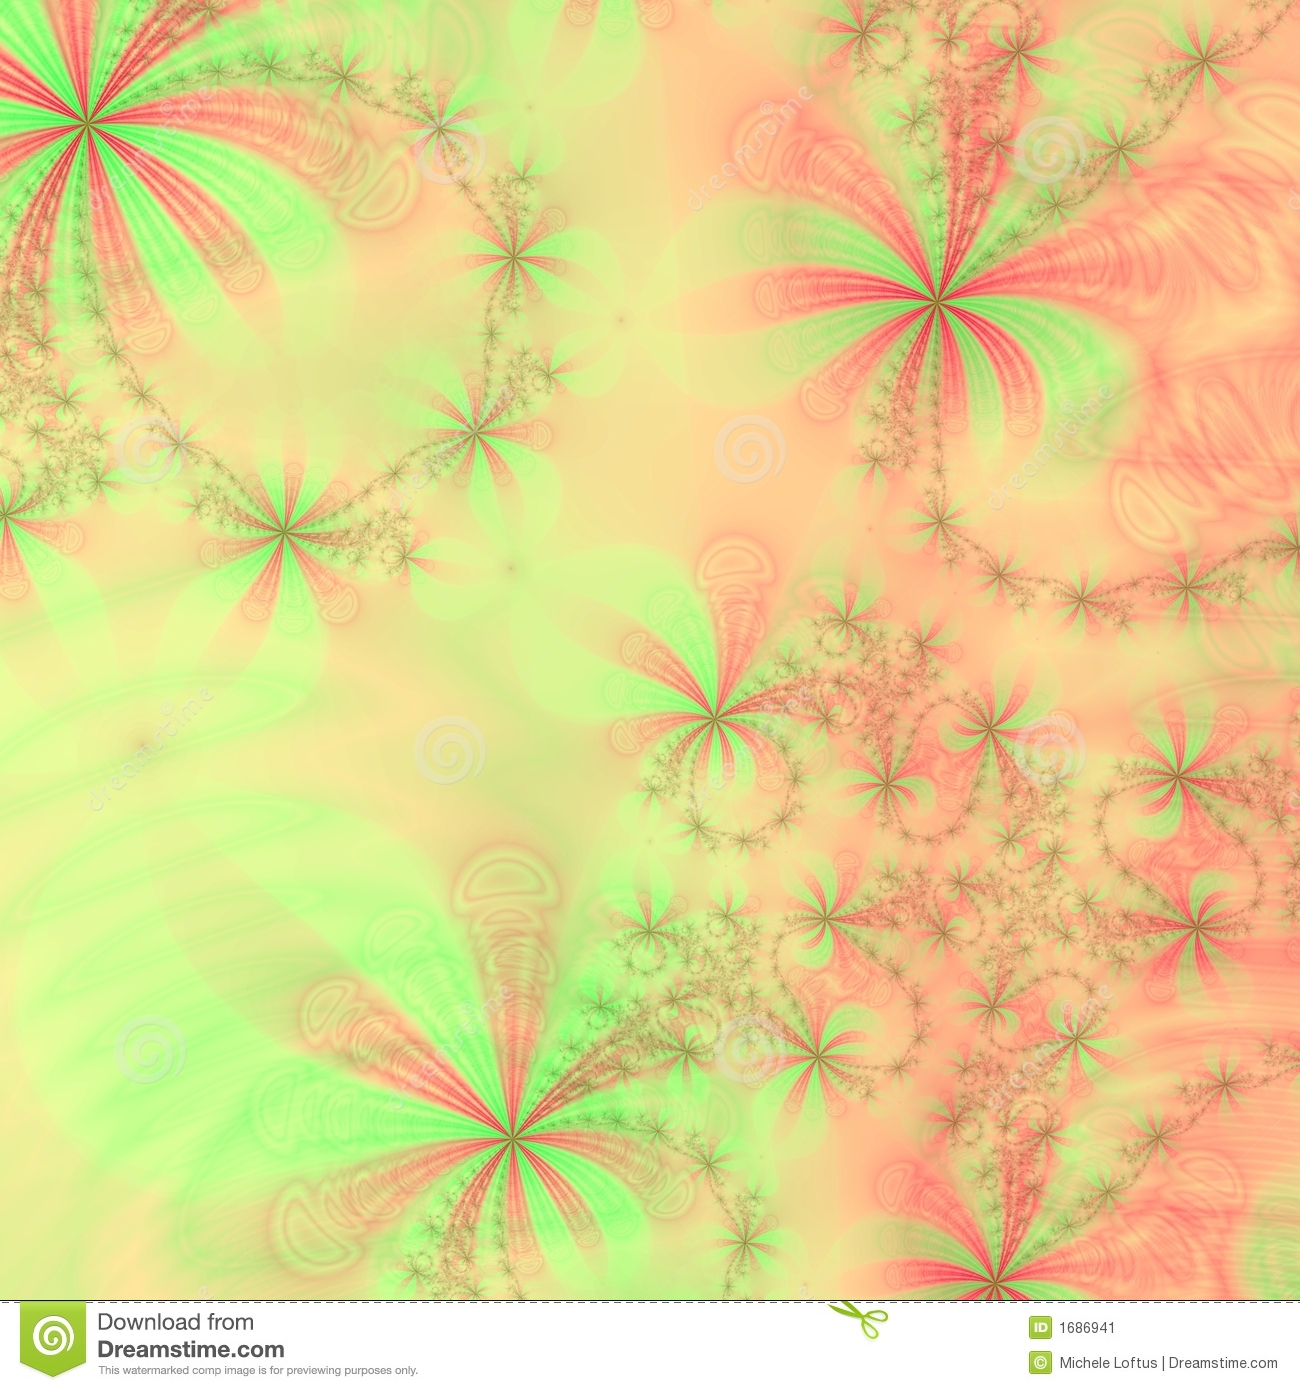 Peach Green And Red Stars BowsAbstract Background Design Template Or Wallpaper